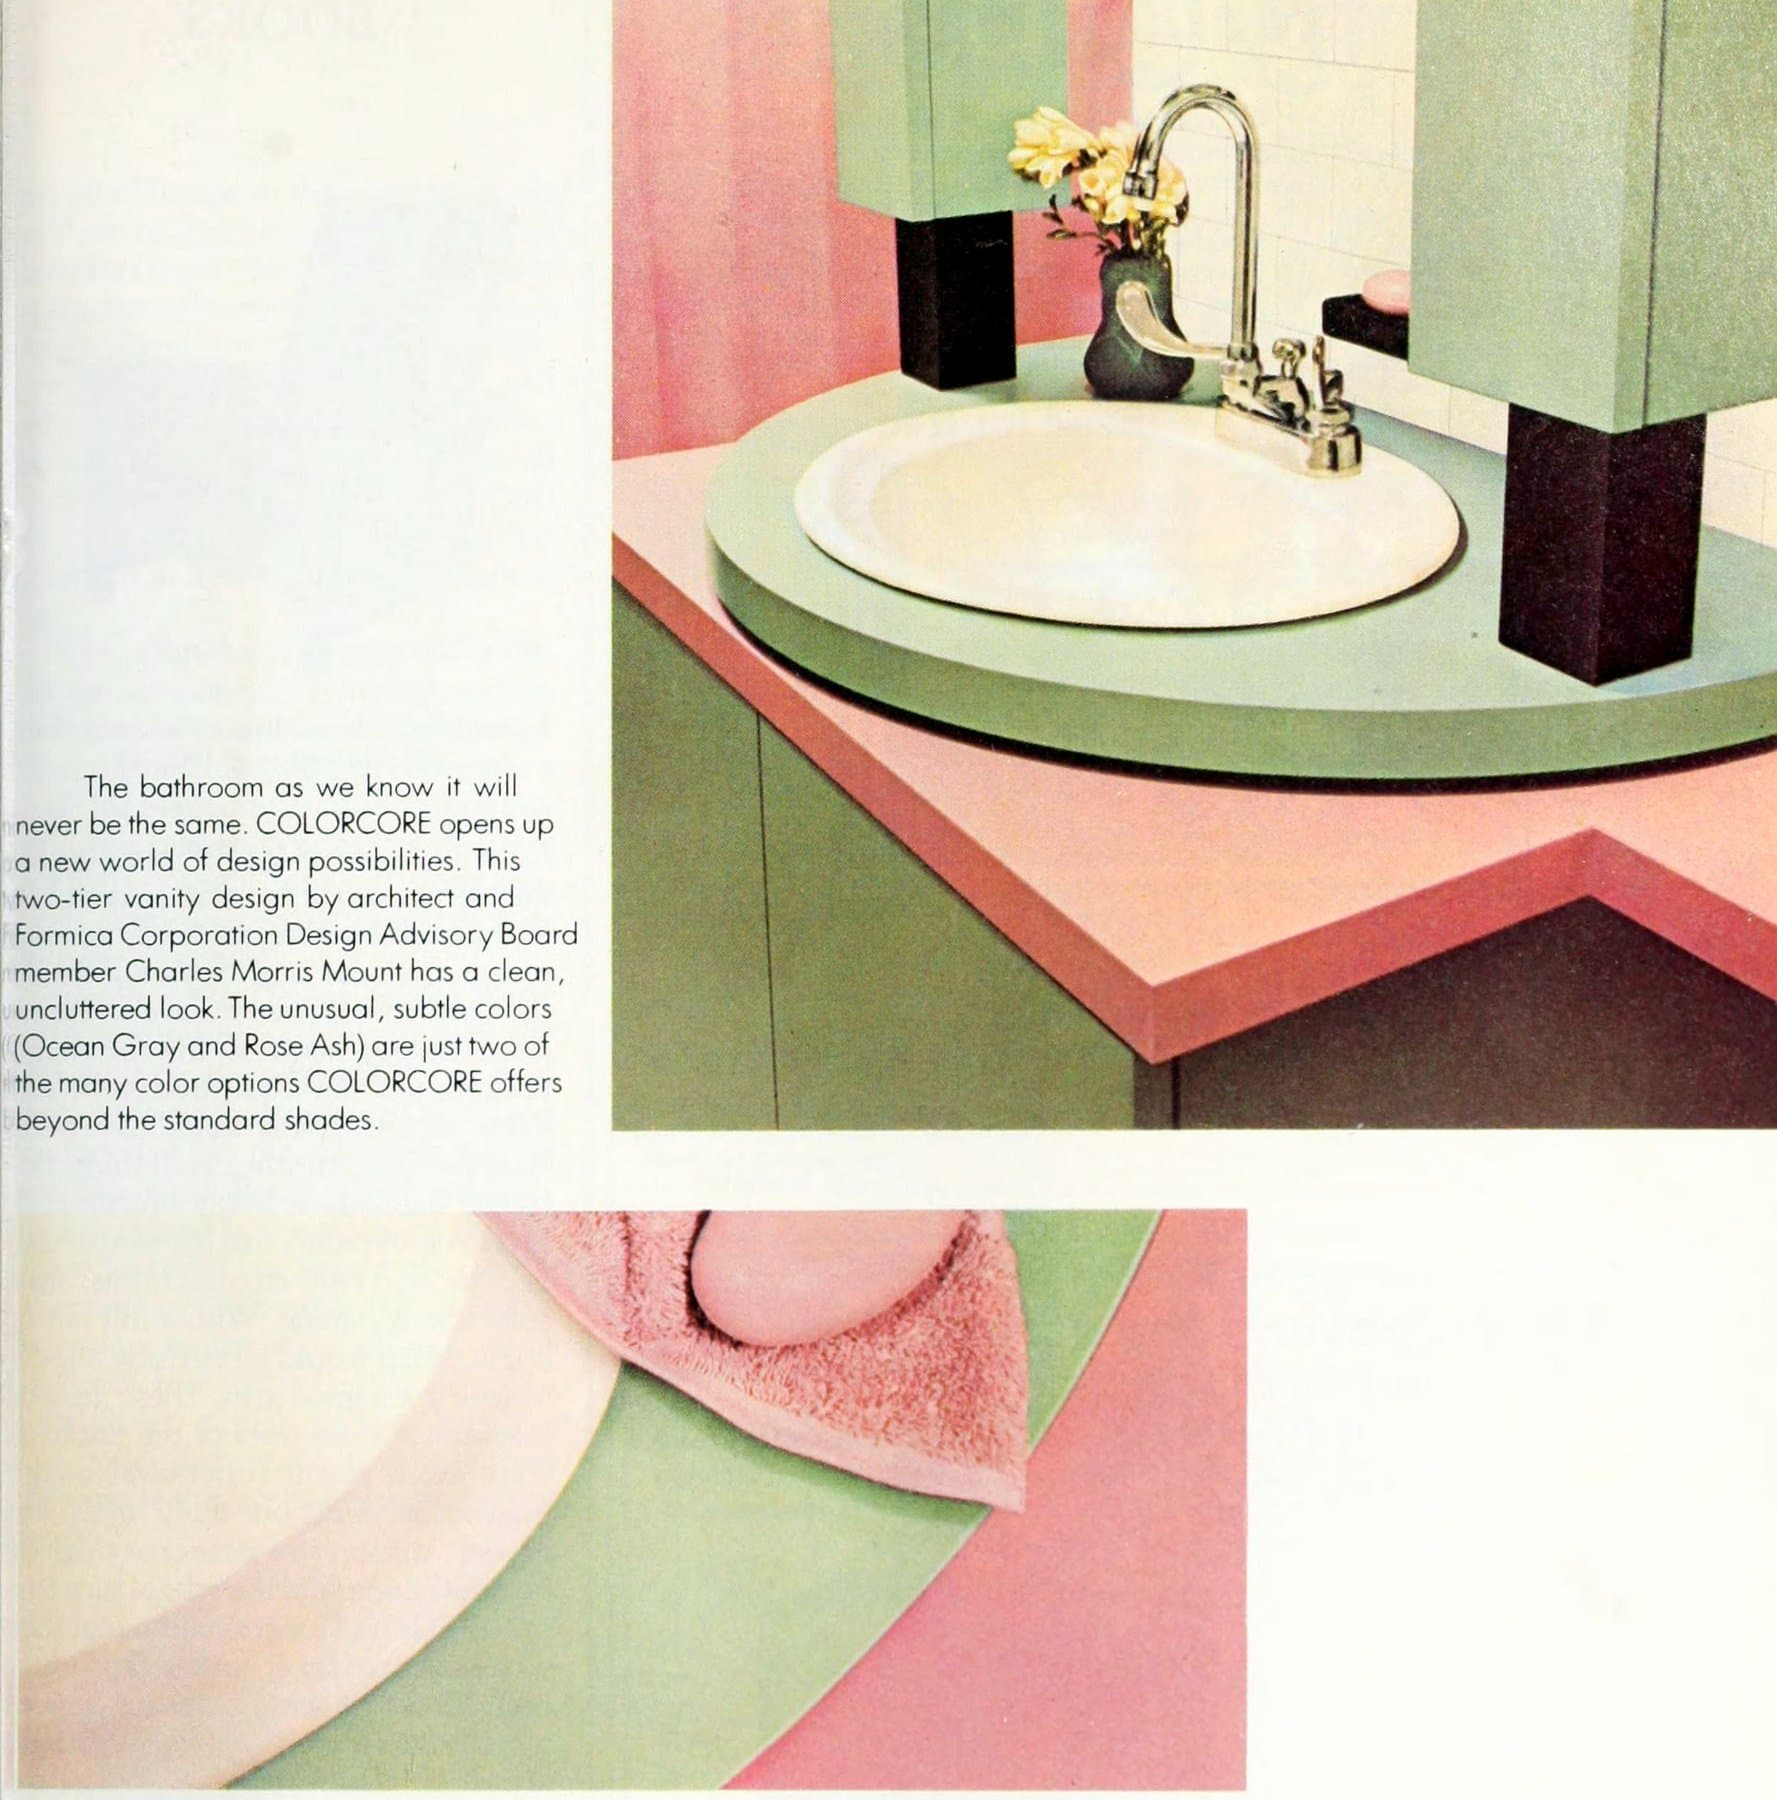 Ocean gray and rose ash ColorCore bathroom vanity decor (1983)